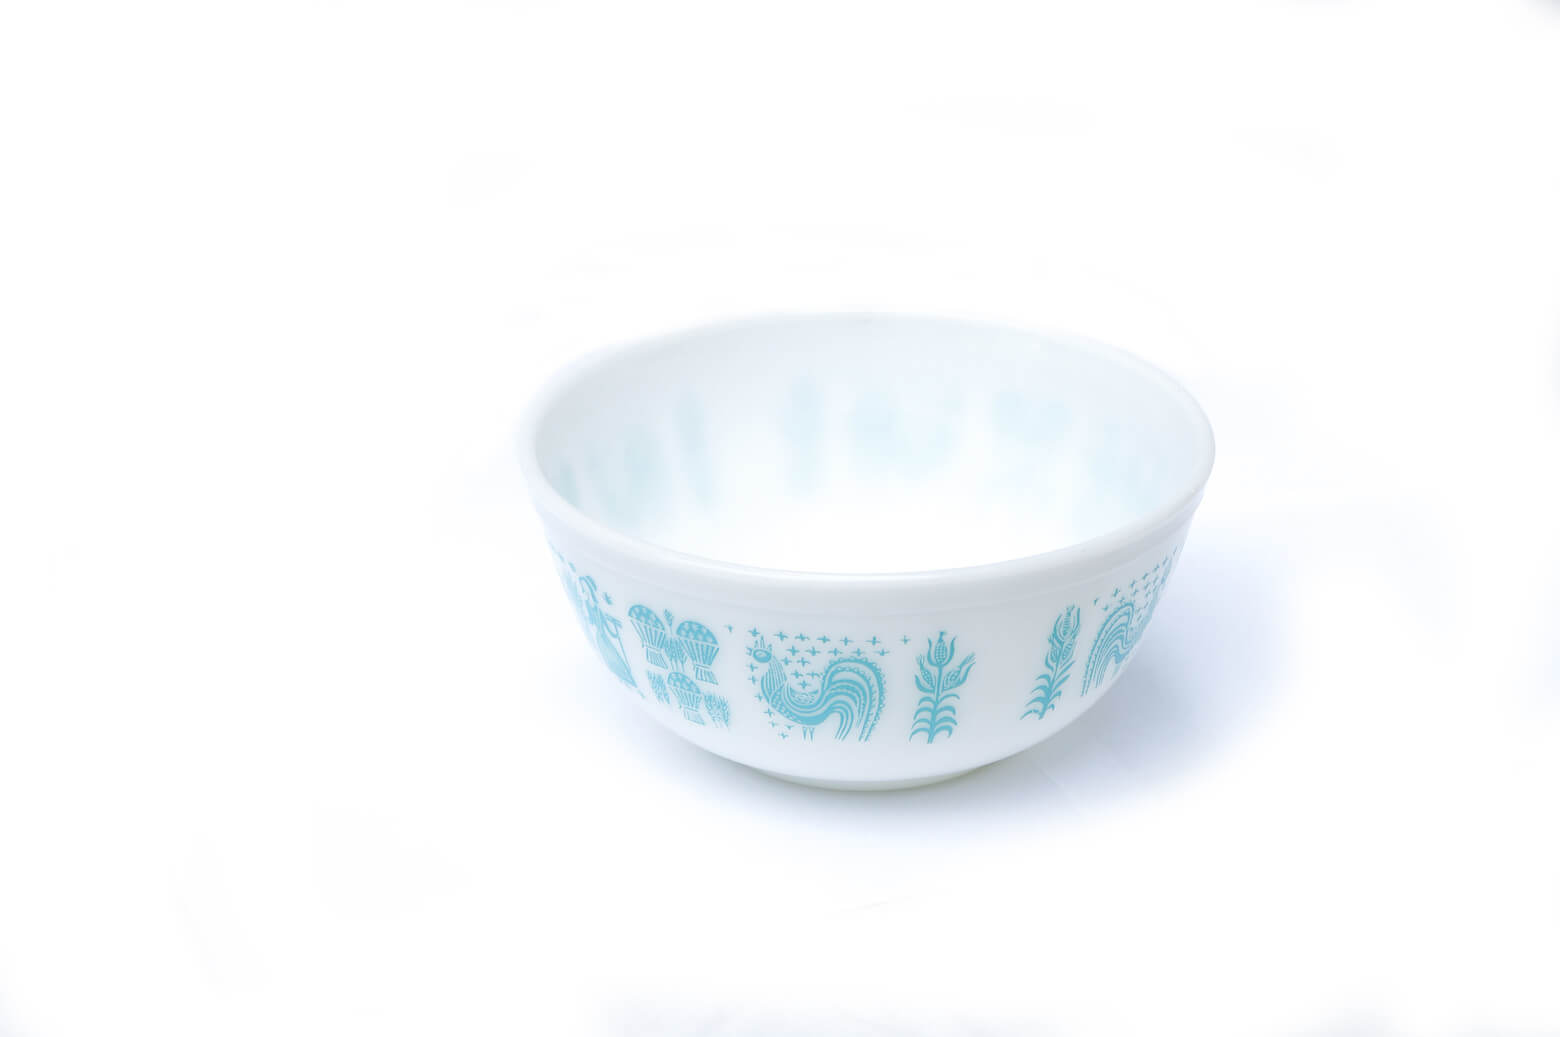 OLD PYREX BUTTER PRINT Mixing Bowl L size MADE IN USA / オールドパイレックス バター プリント ミキシング ボウル Lサイズ アメリカ製